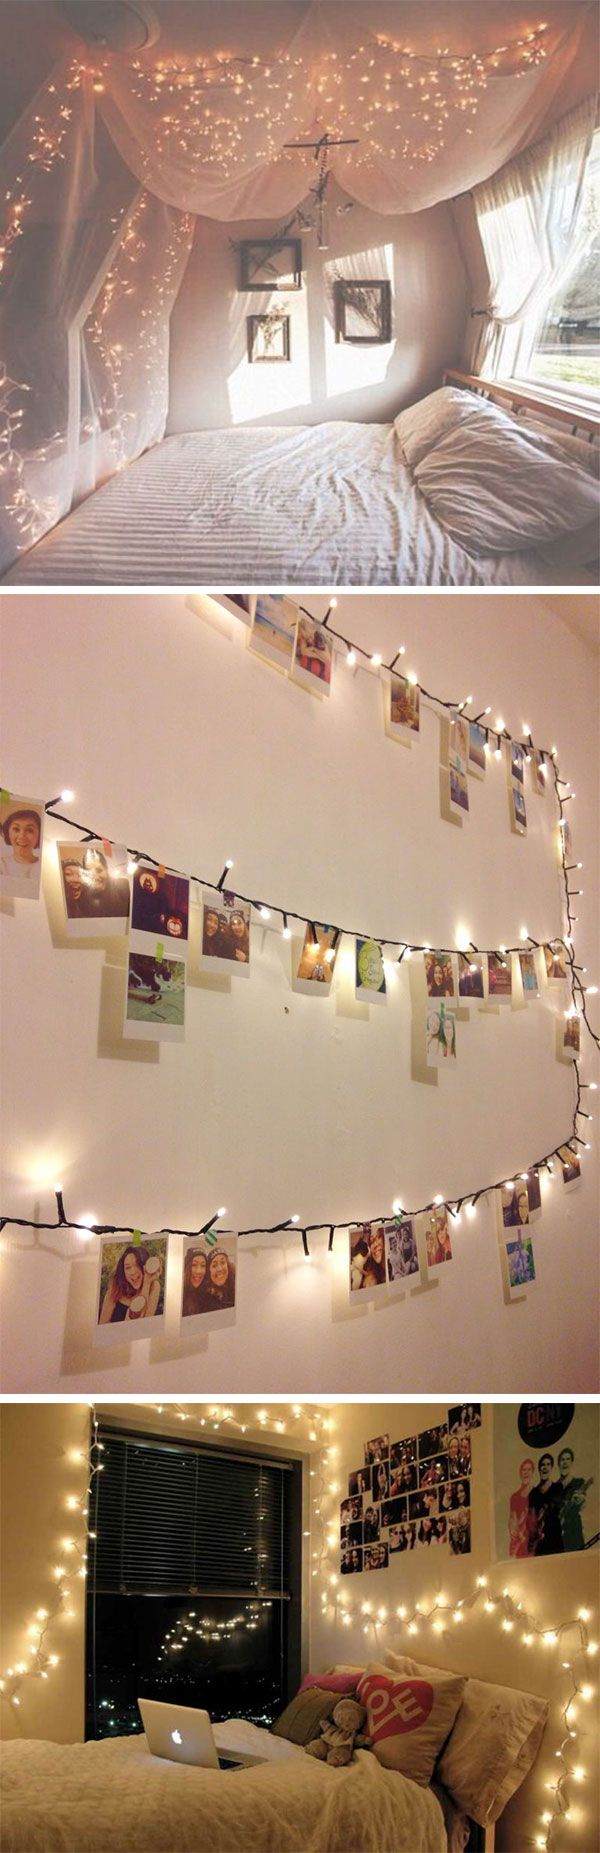 13 ways to use fairy lights to make your home look magical dream bedroomdiy